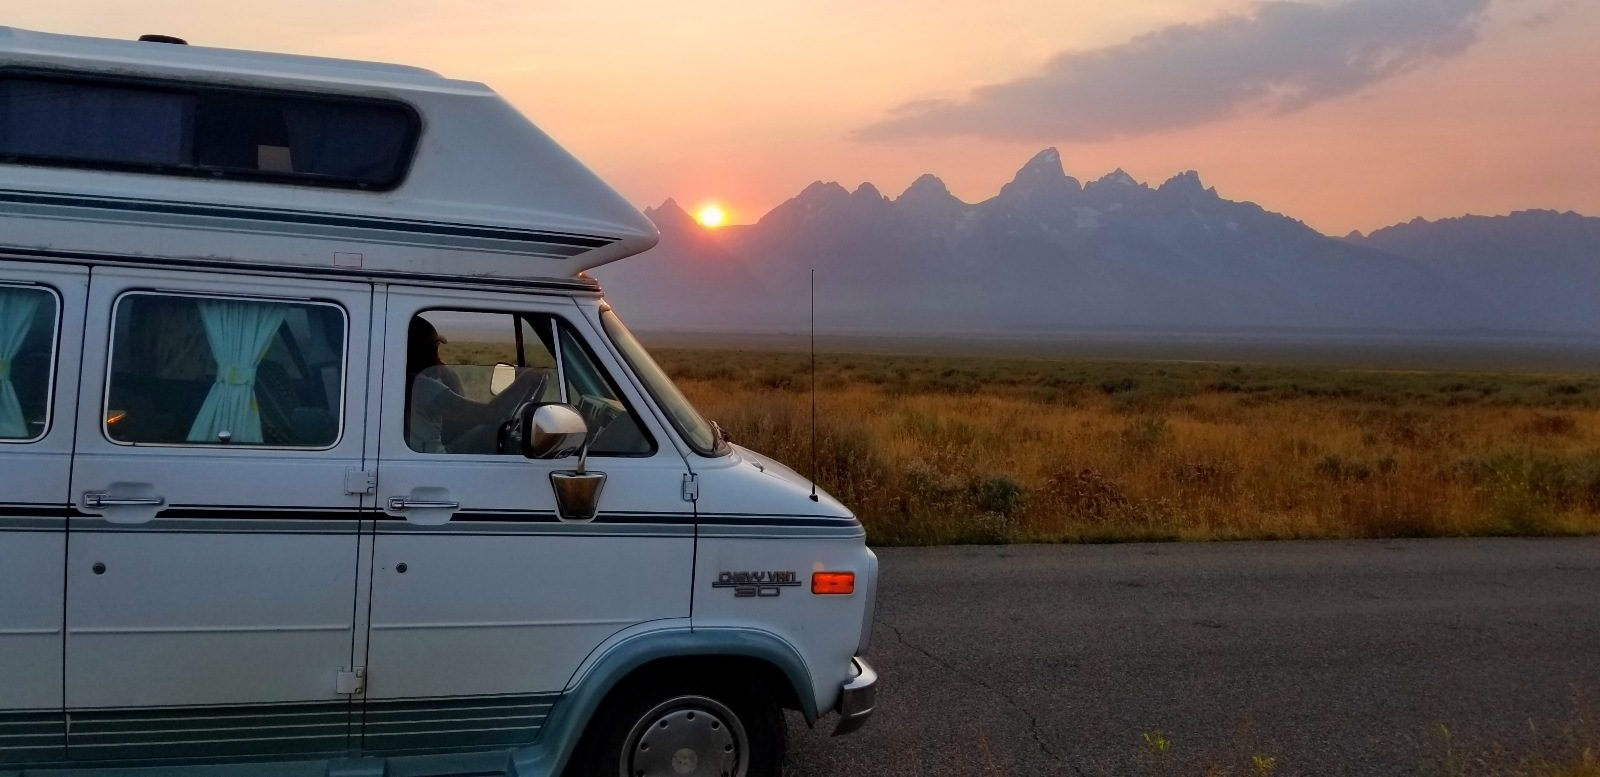 Grand Teton National Park Sunset Campervan